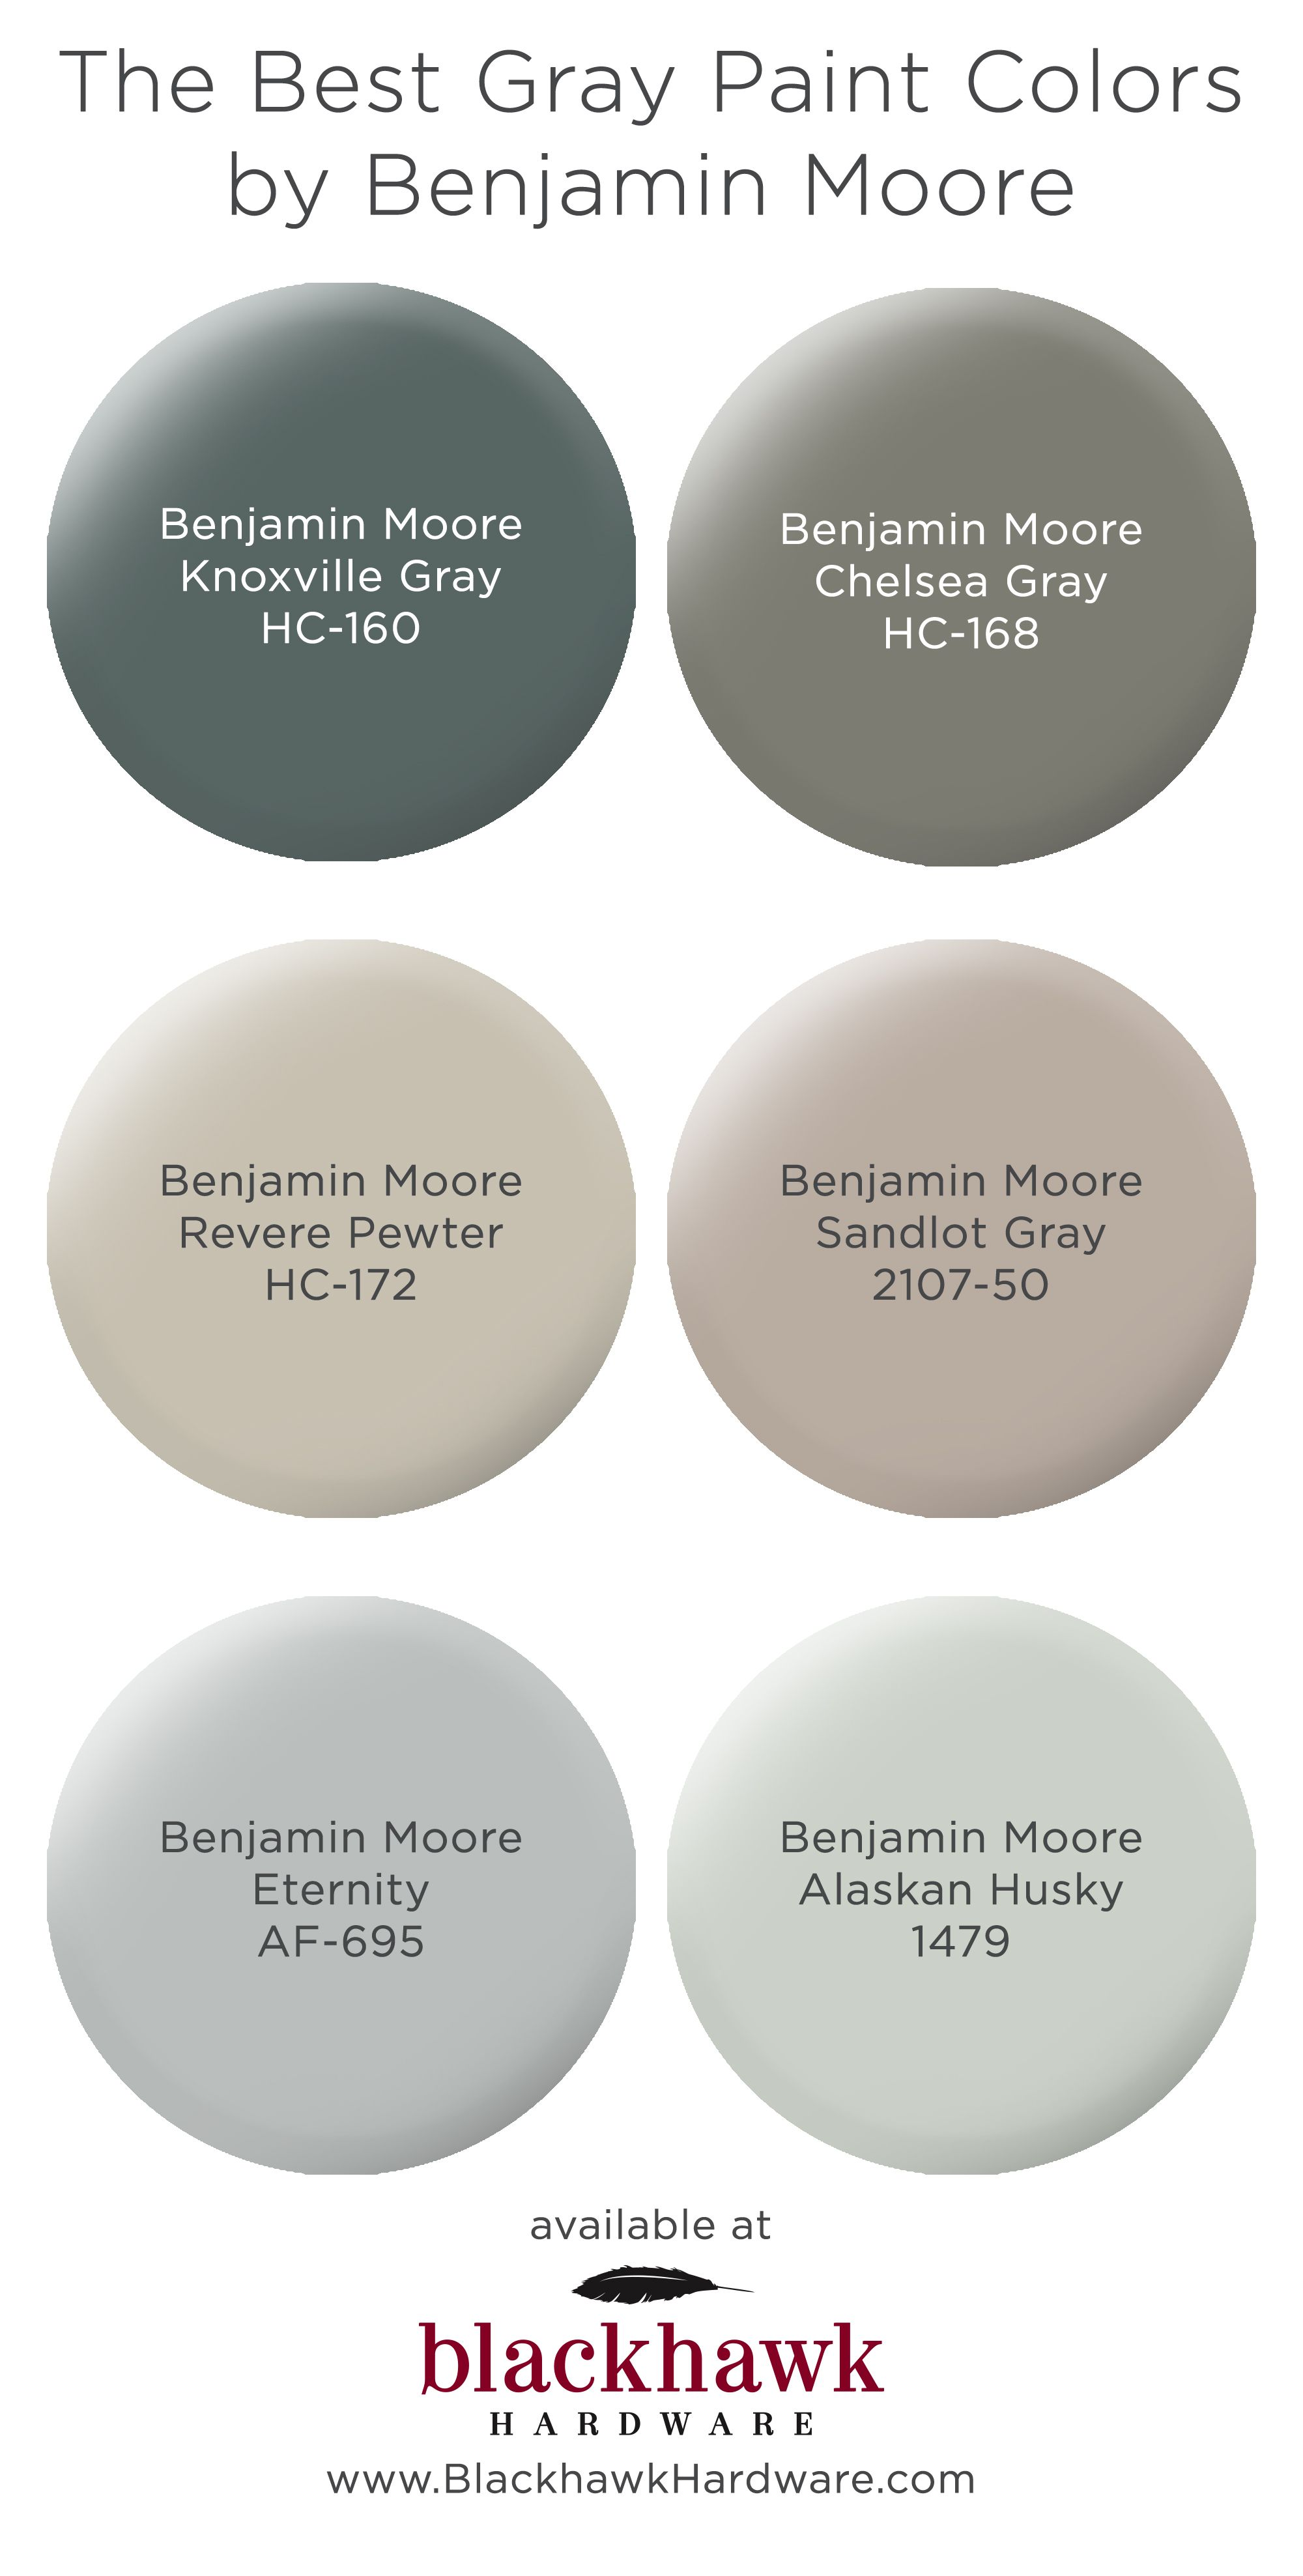 The Best Gray Paint Shades by Benjamin Moore